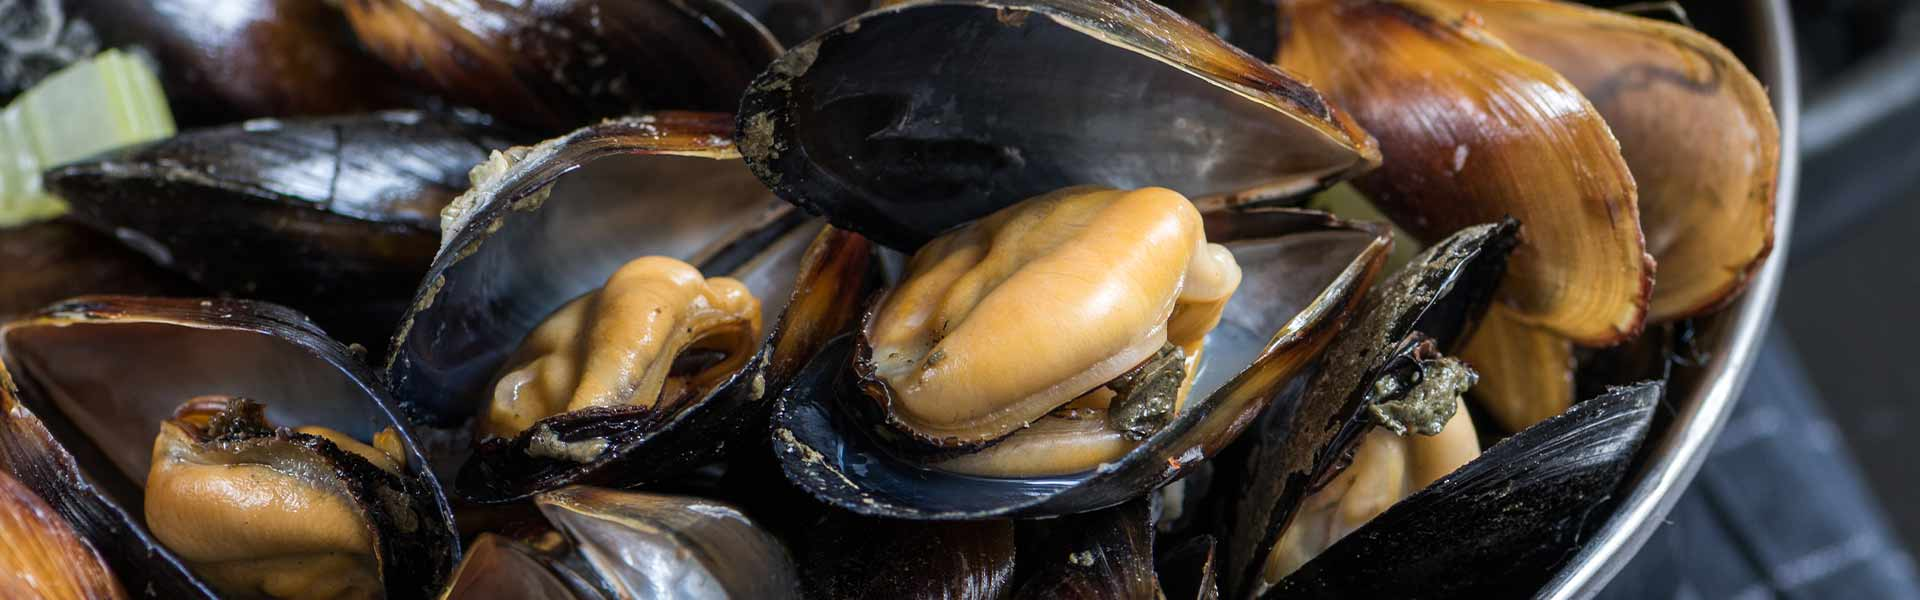 mussels steamed in white wine and garlic, served with garlic toast